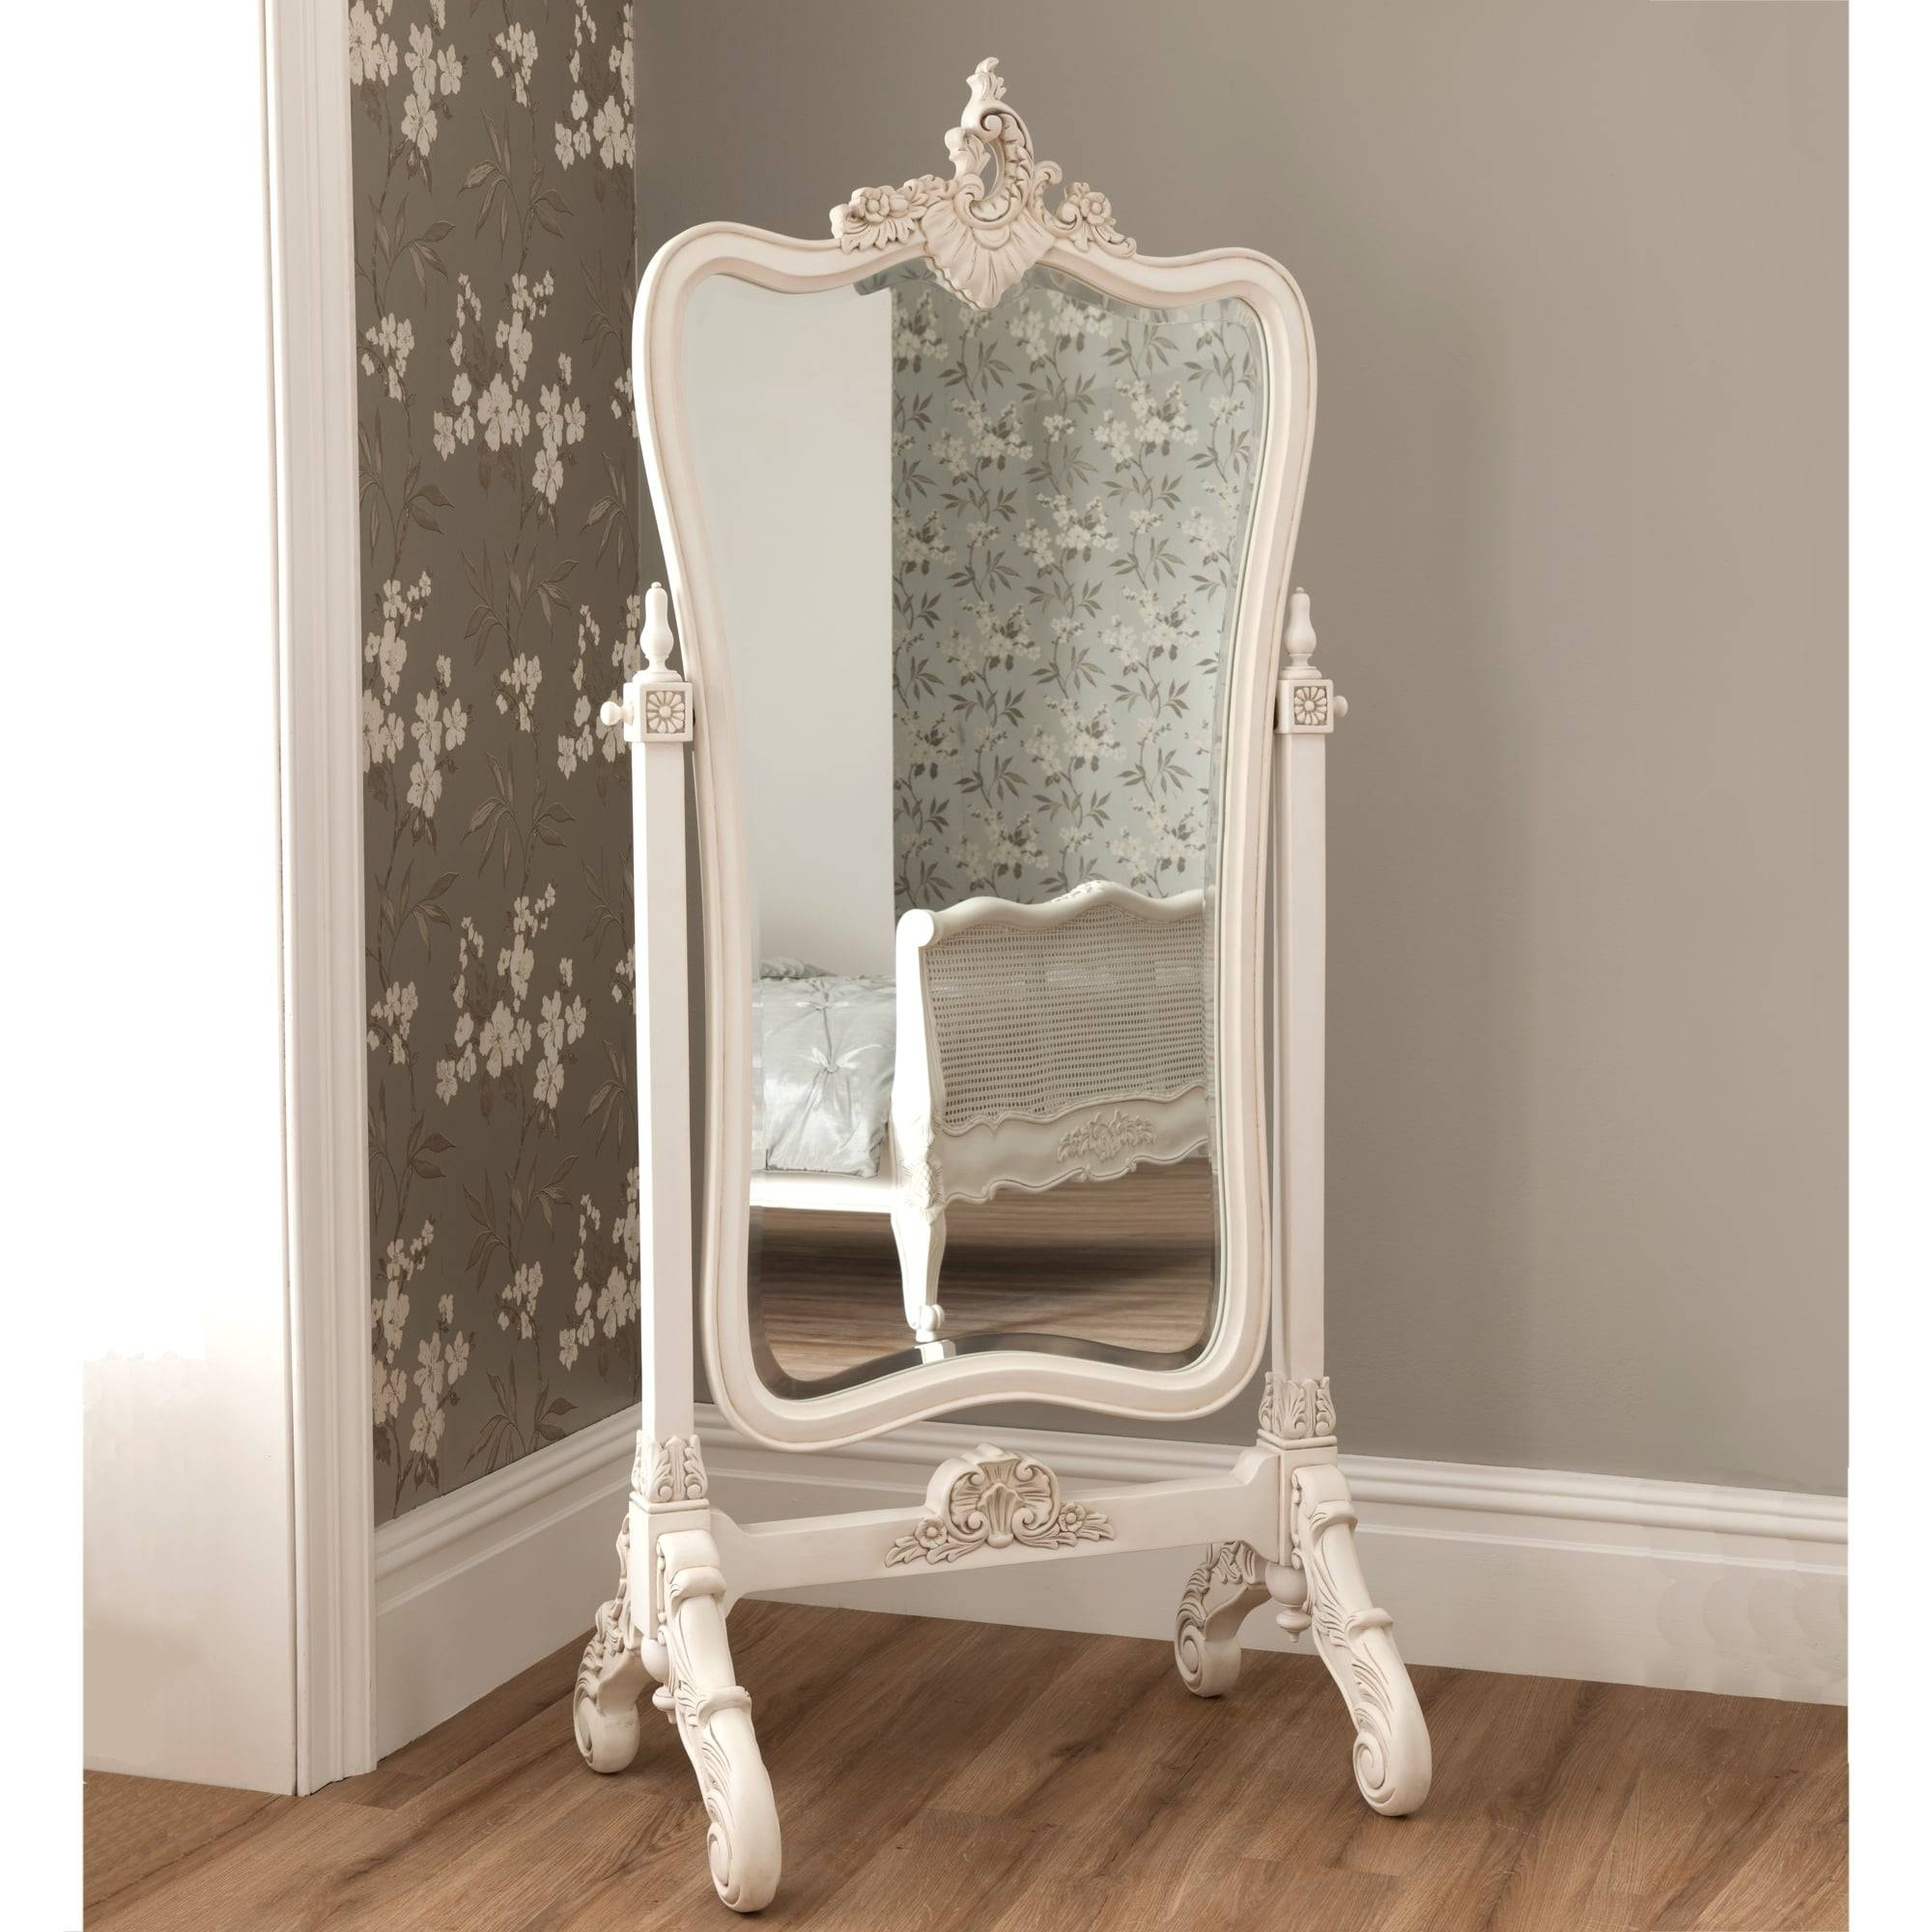 Cheval Mirrors | French Style Mirrors | Shabby Chic intended for French White Mirrors (Image 3 of 15)